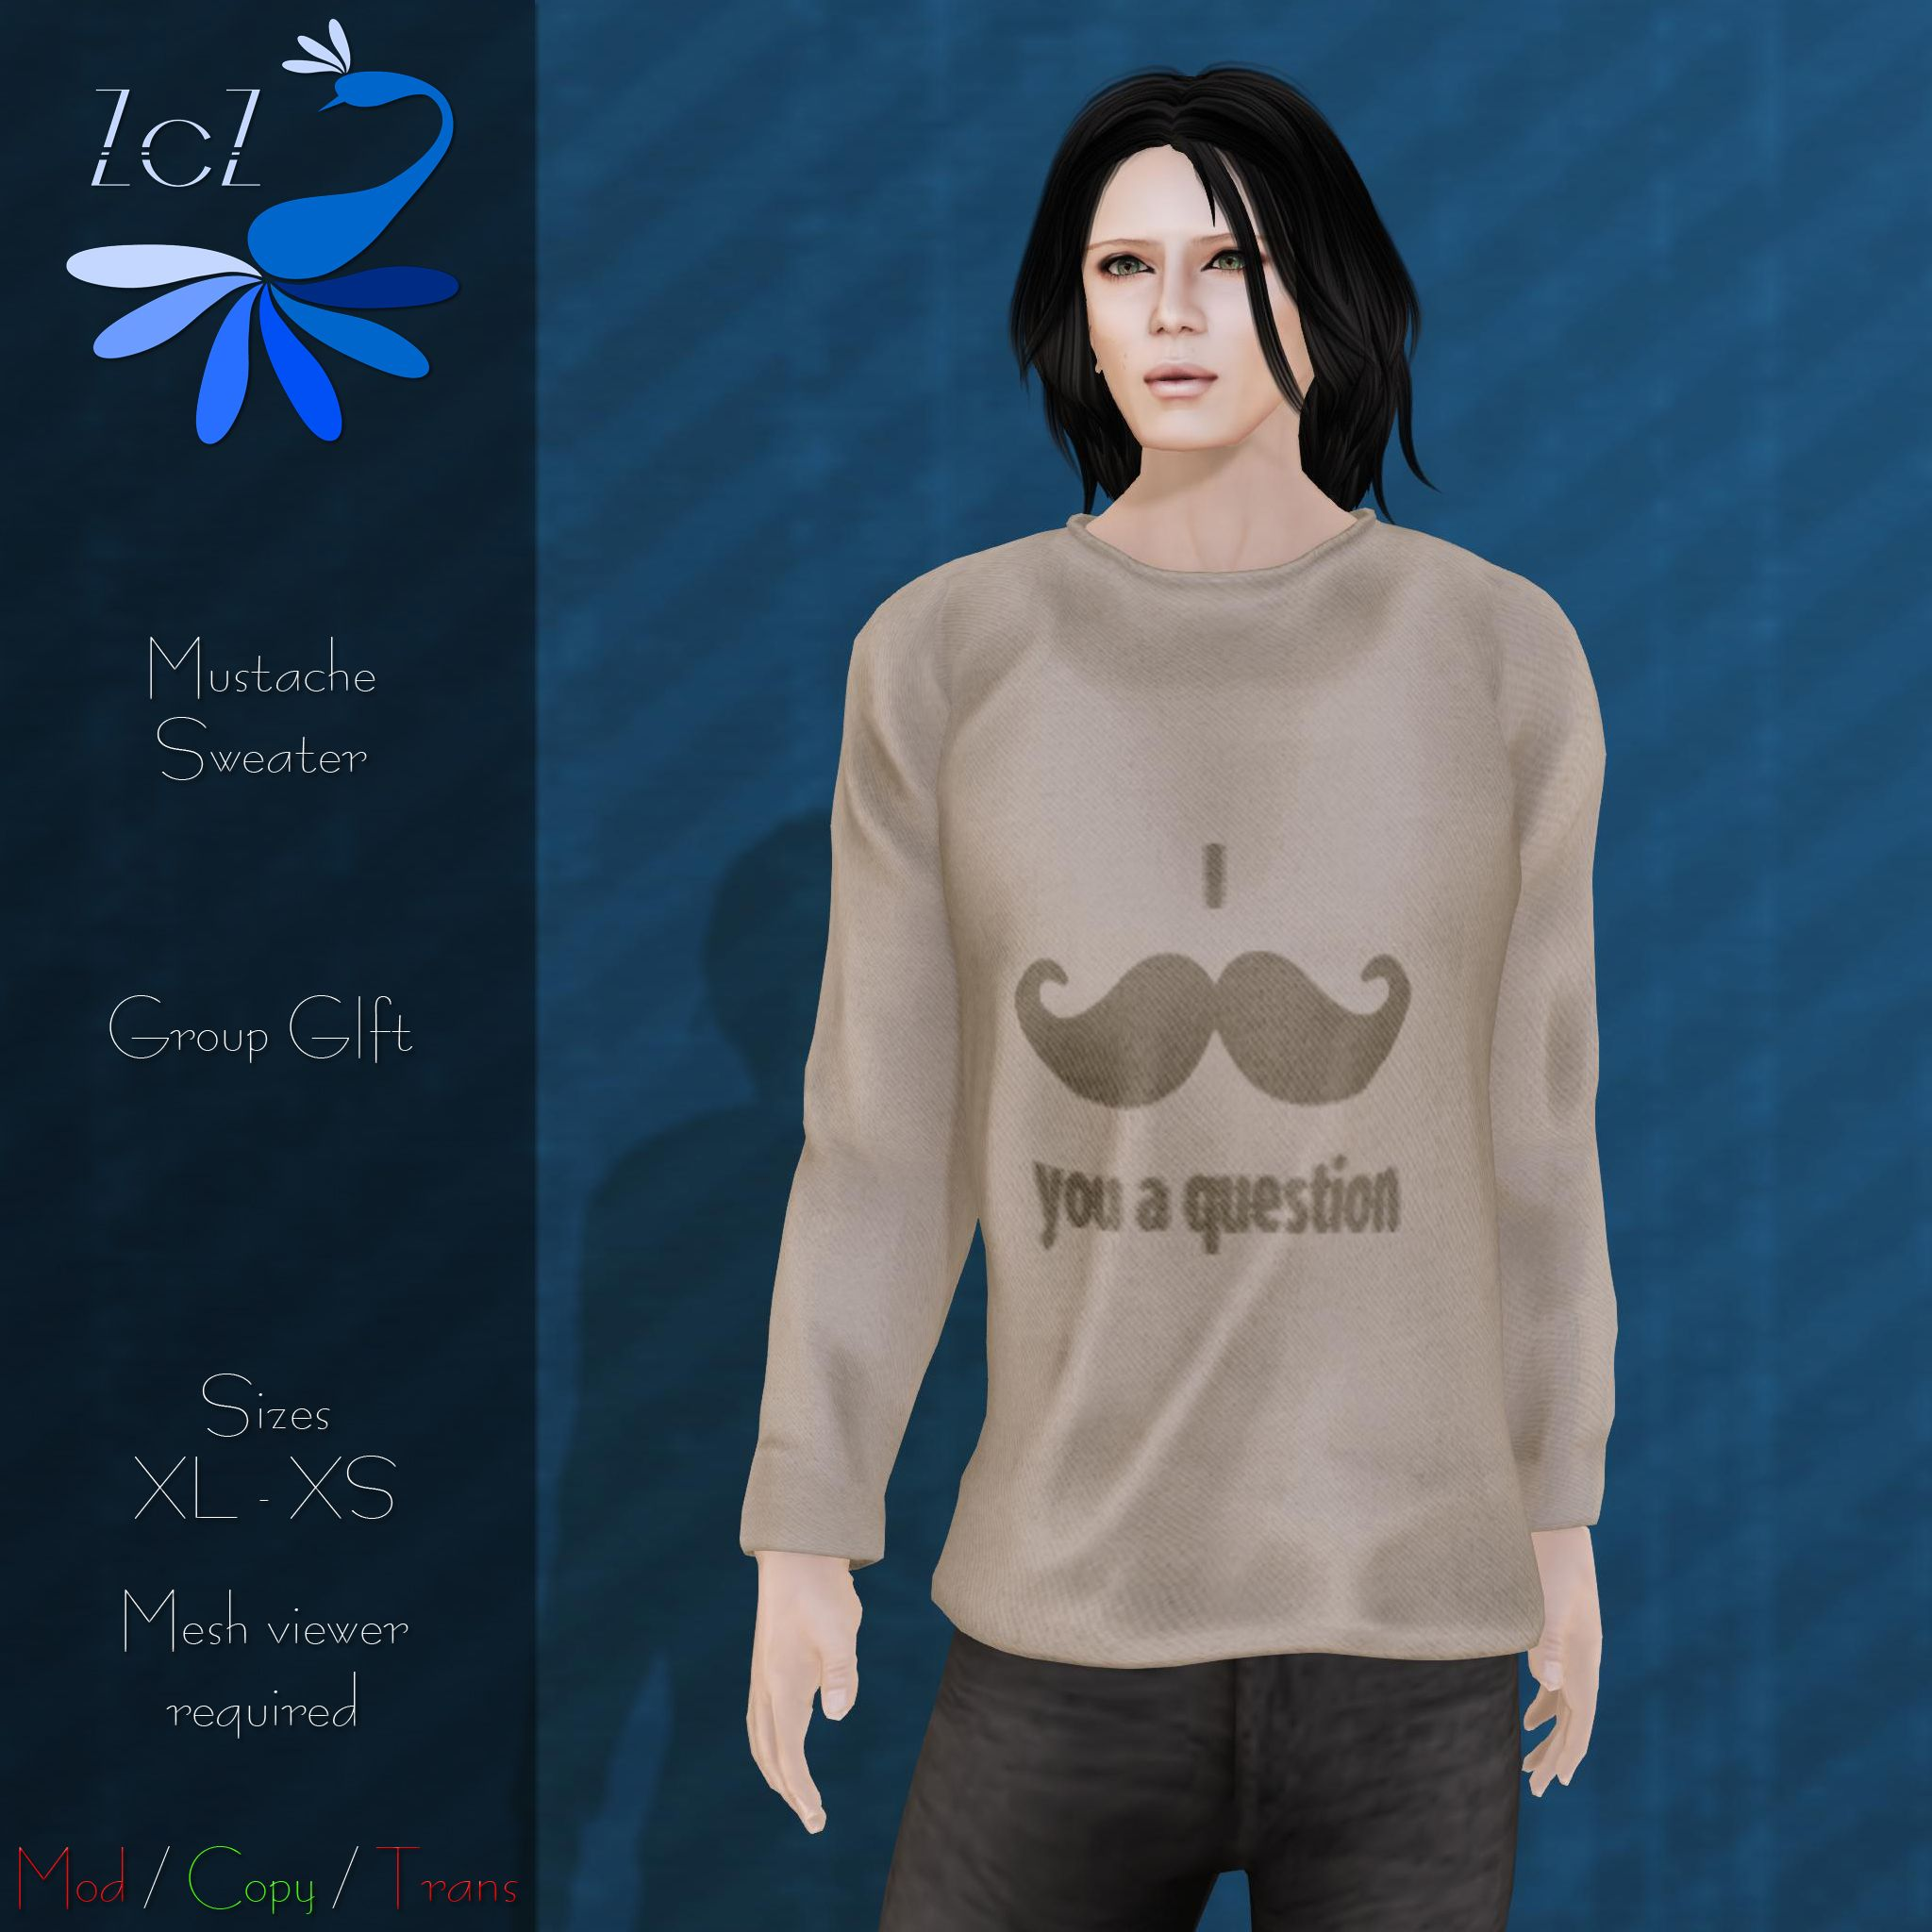 Vendor Ad - Mustache Sweater Group Gift